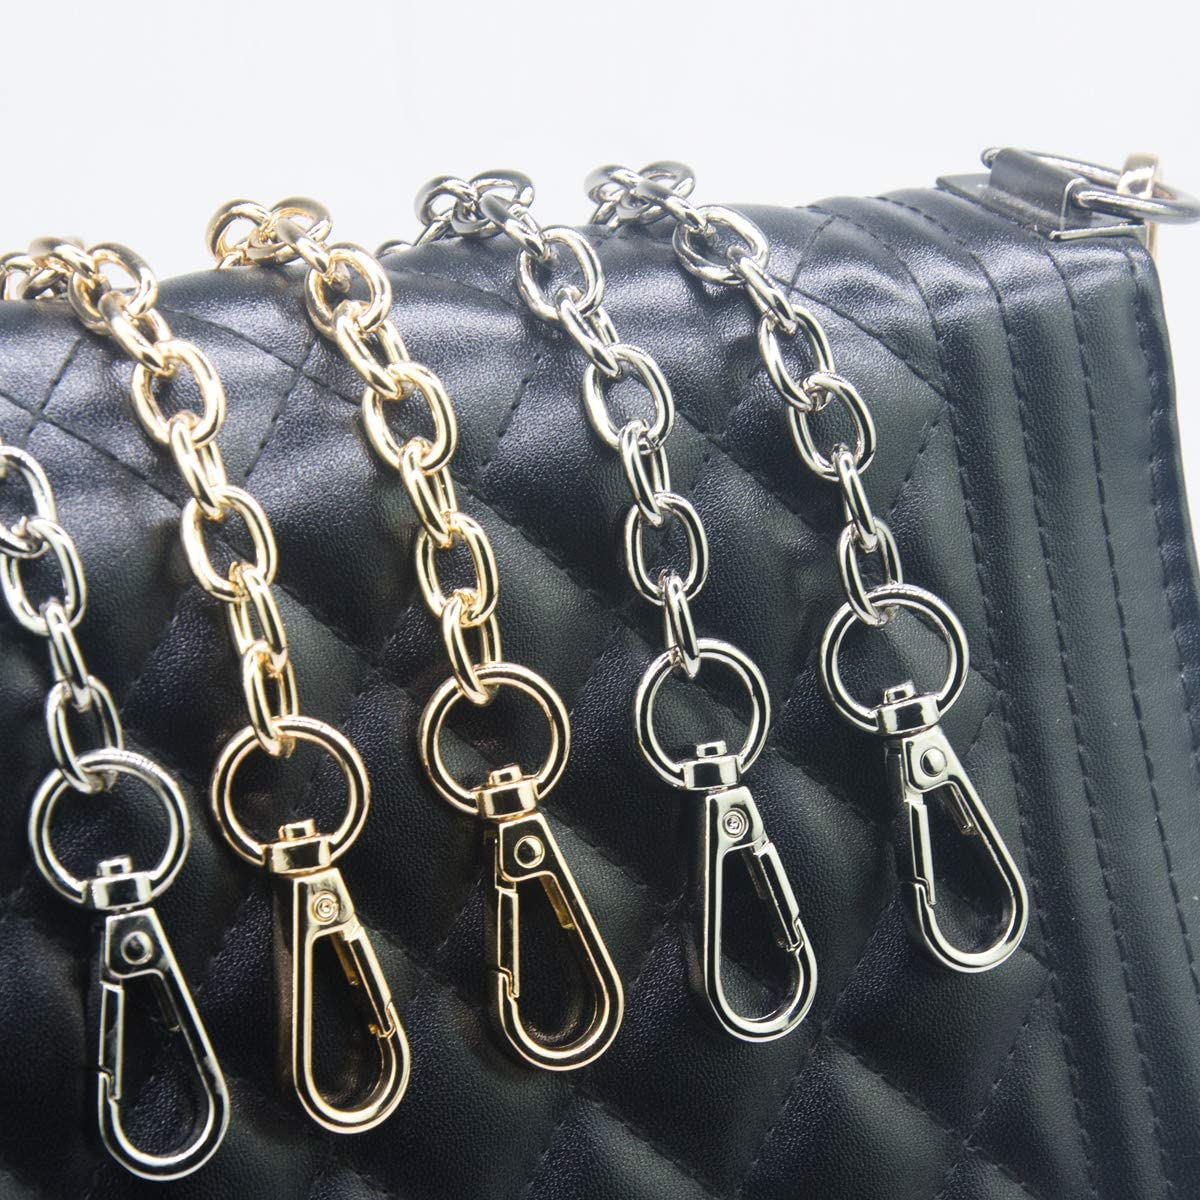 Gold Chains Accessories Clutches Handles 2-Pack 23.6 Long Replacement Straps for Purses or Handbag SUPXINJIA Handle Chain Strap